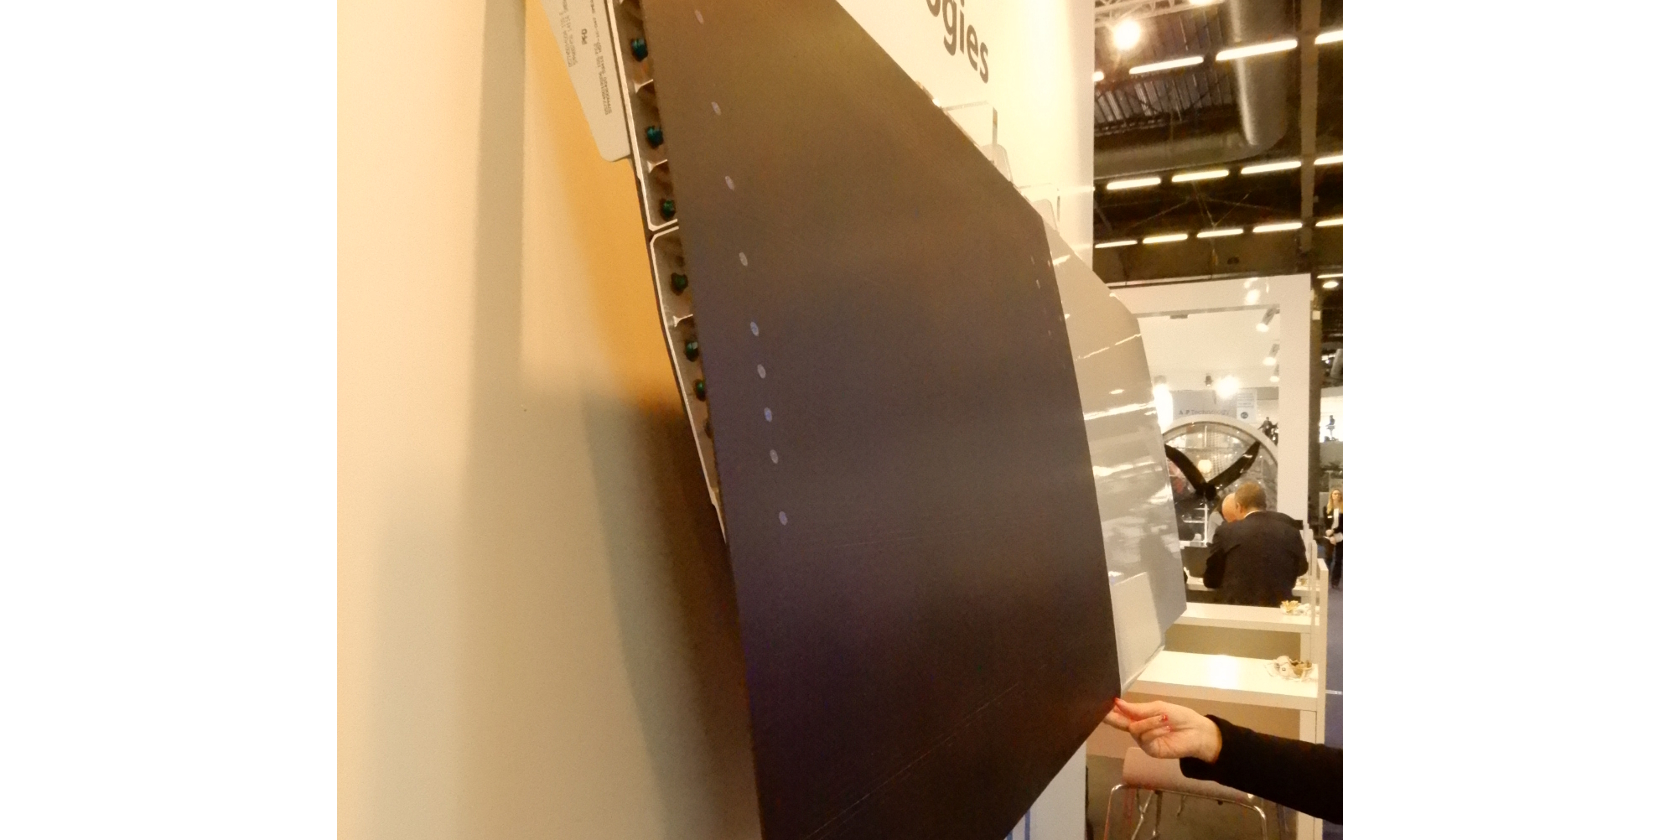 Teijin Targets Growth With Carbon Fiber Intermediate Materials for Aircraft